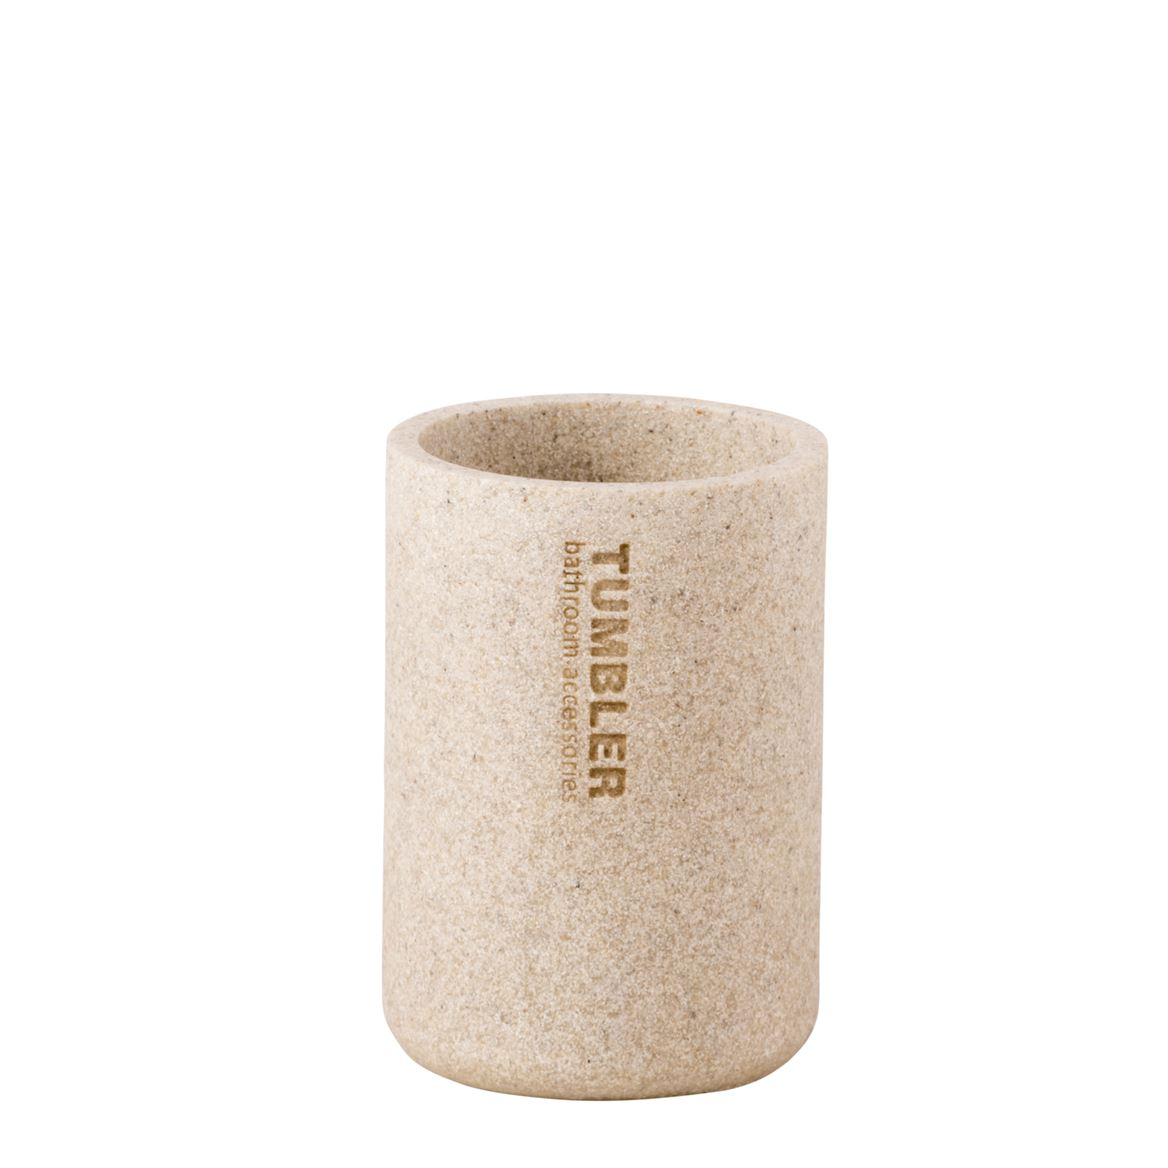 NEW RESIN Gobelet naturel H 11,5 cm; Ø 7,9 cm_new-resin-gobelet-naturel-h-11,5-cm;-ø-7,9-cm